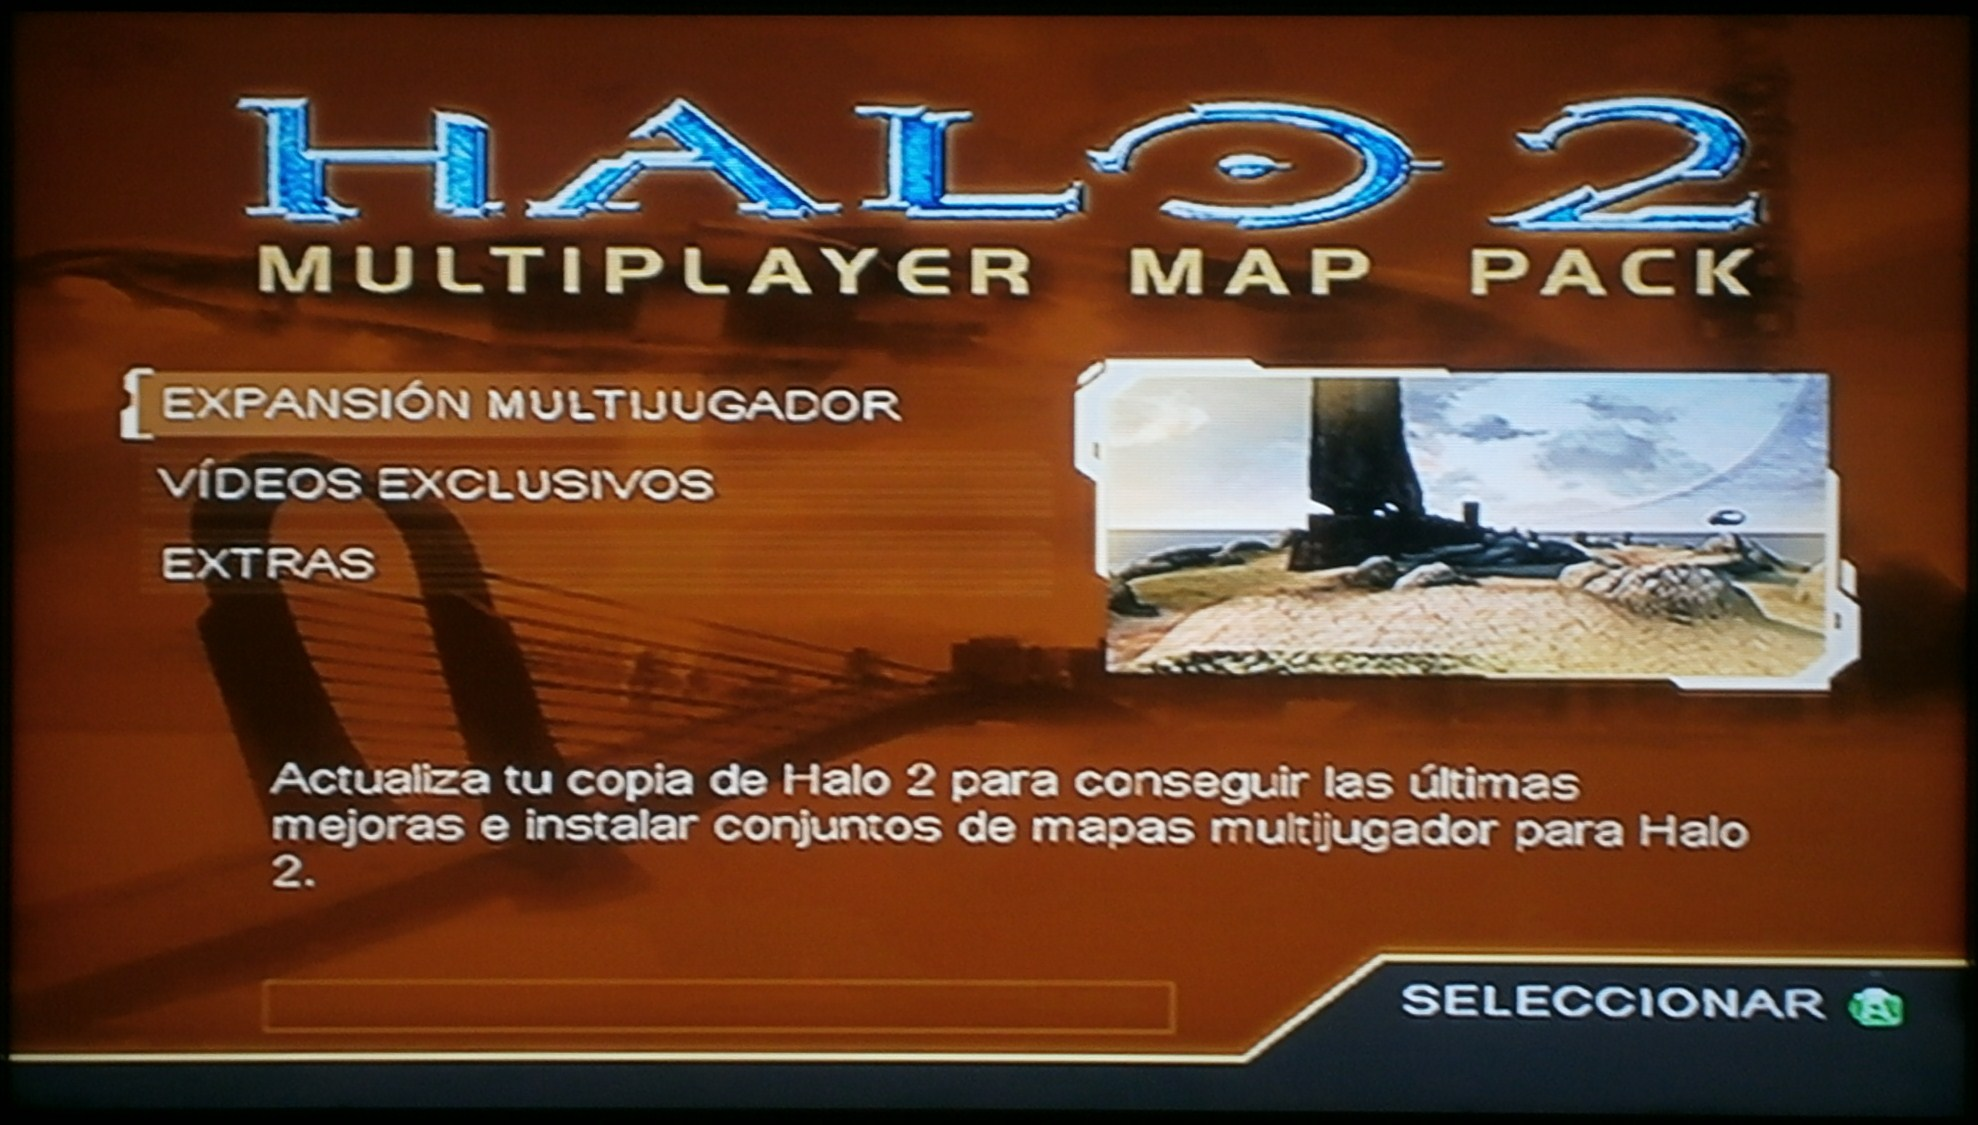 Halo 2 Multiplayer Map Pack - Halopedia